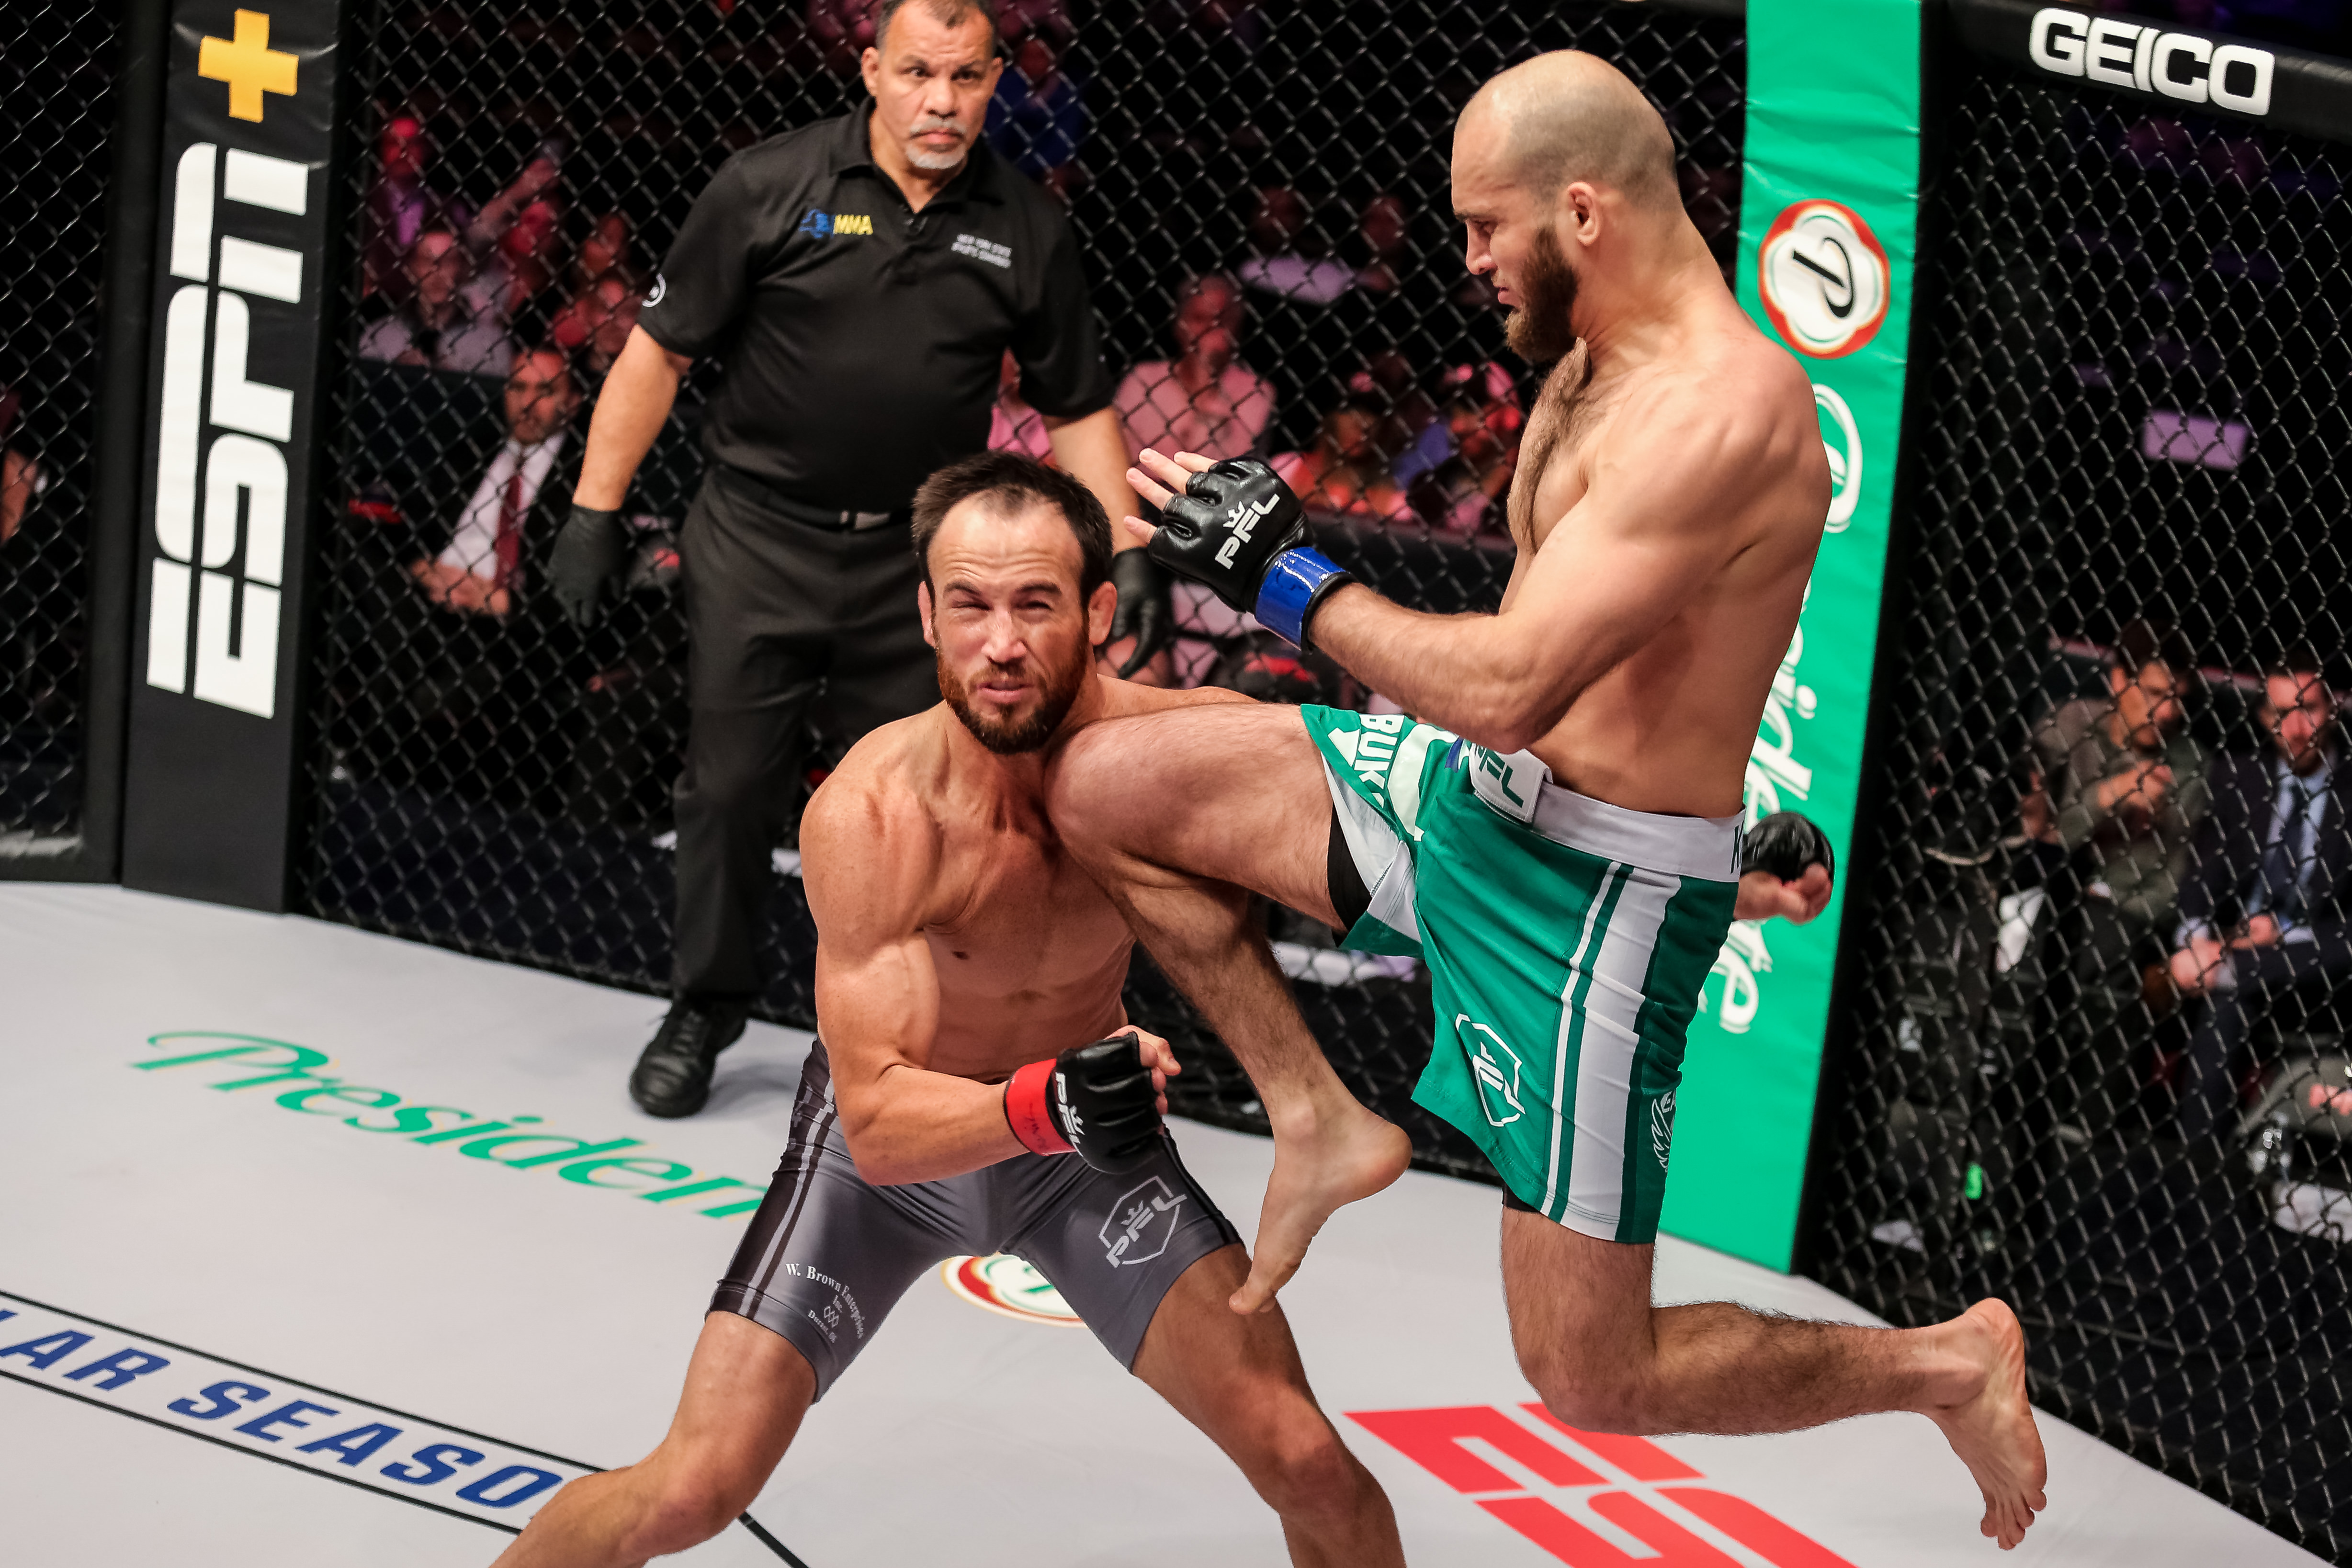 (Russia Today) Million-dollar MMA: Professional Fighters League Says Russia is a 'Priority Market' as Organization Plans 2021 Return